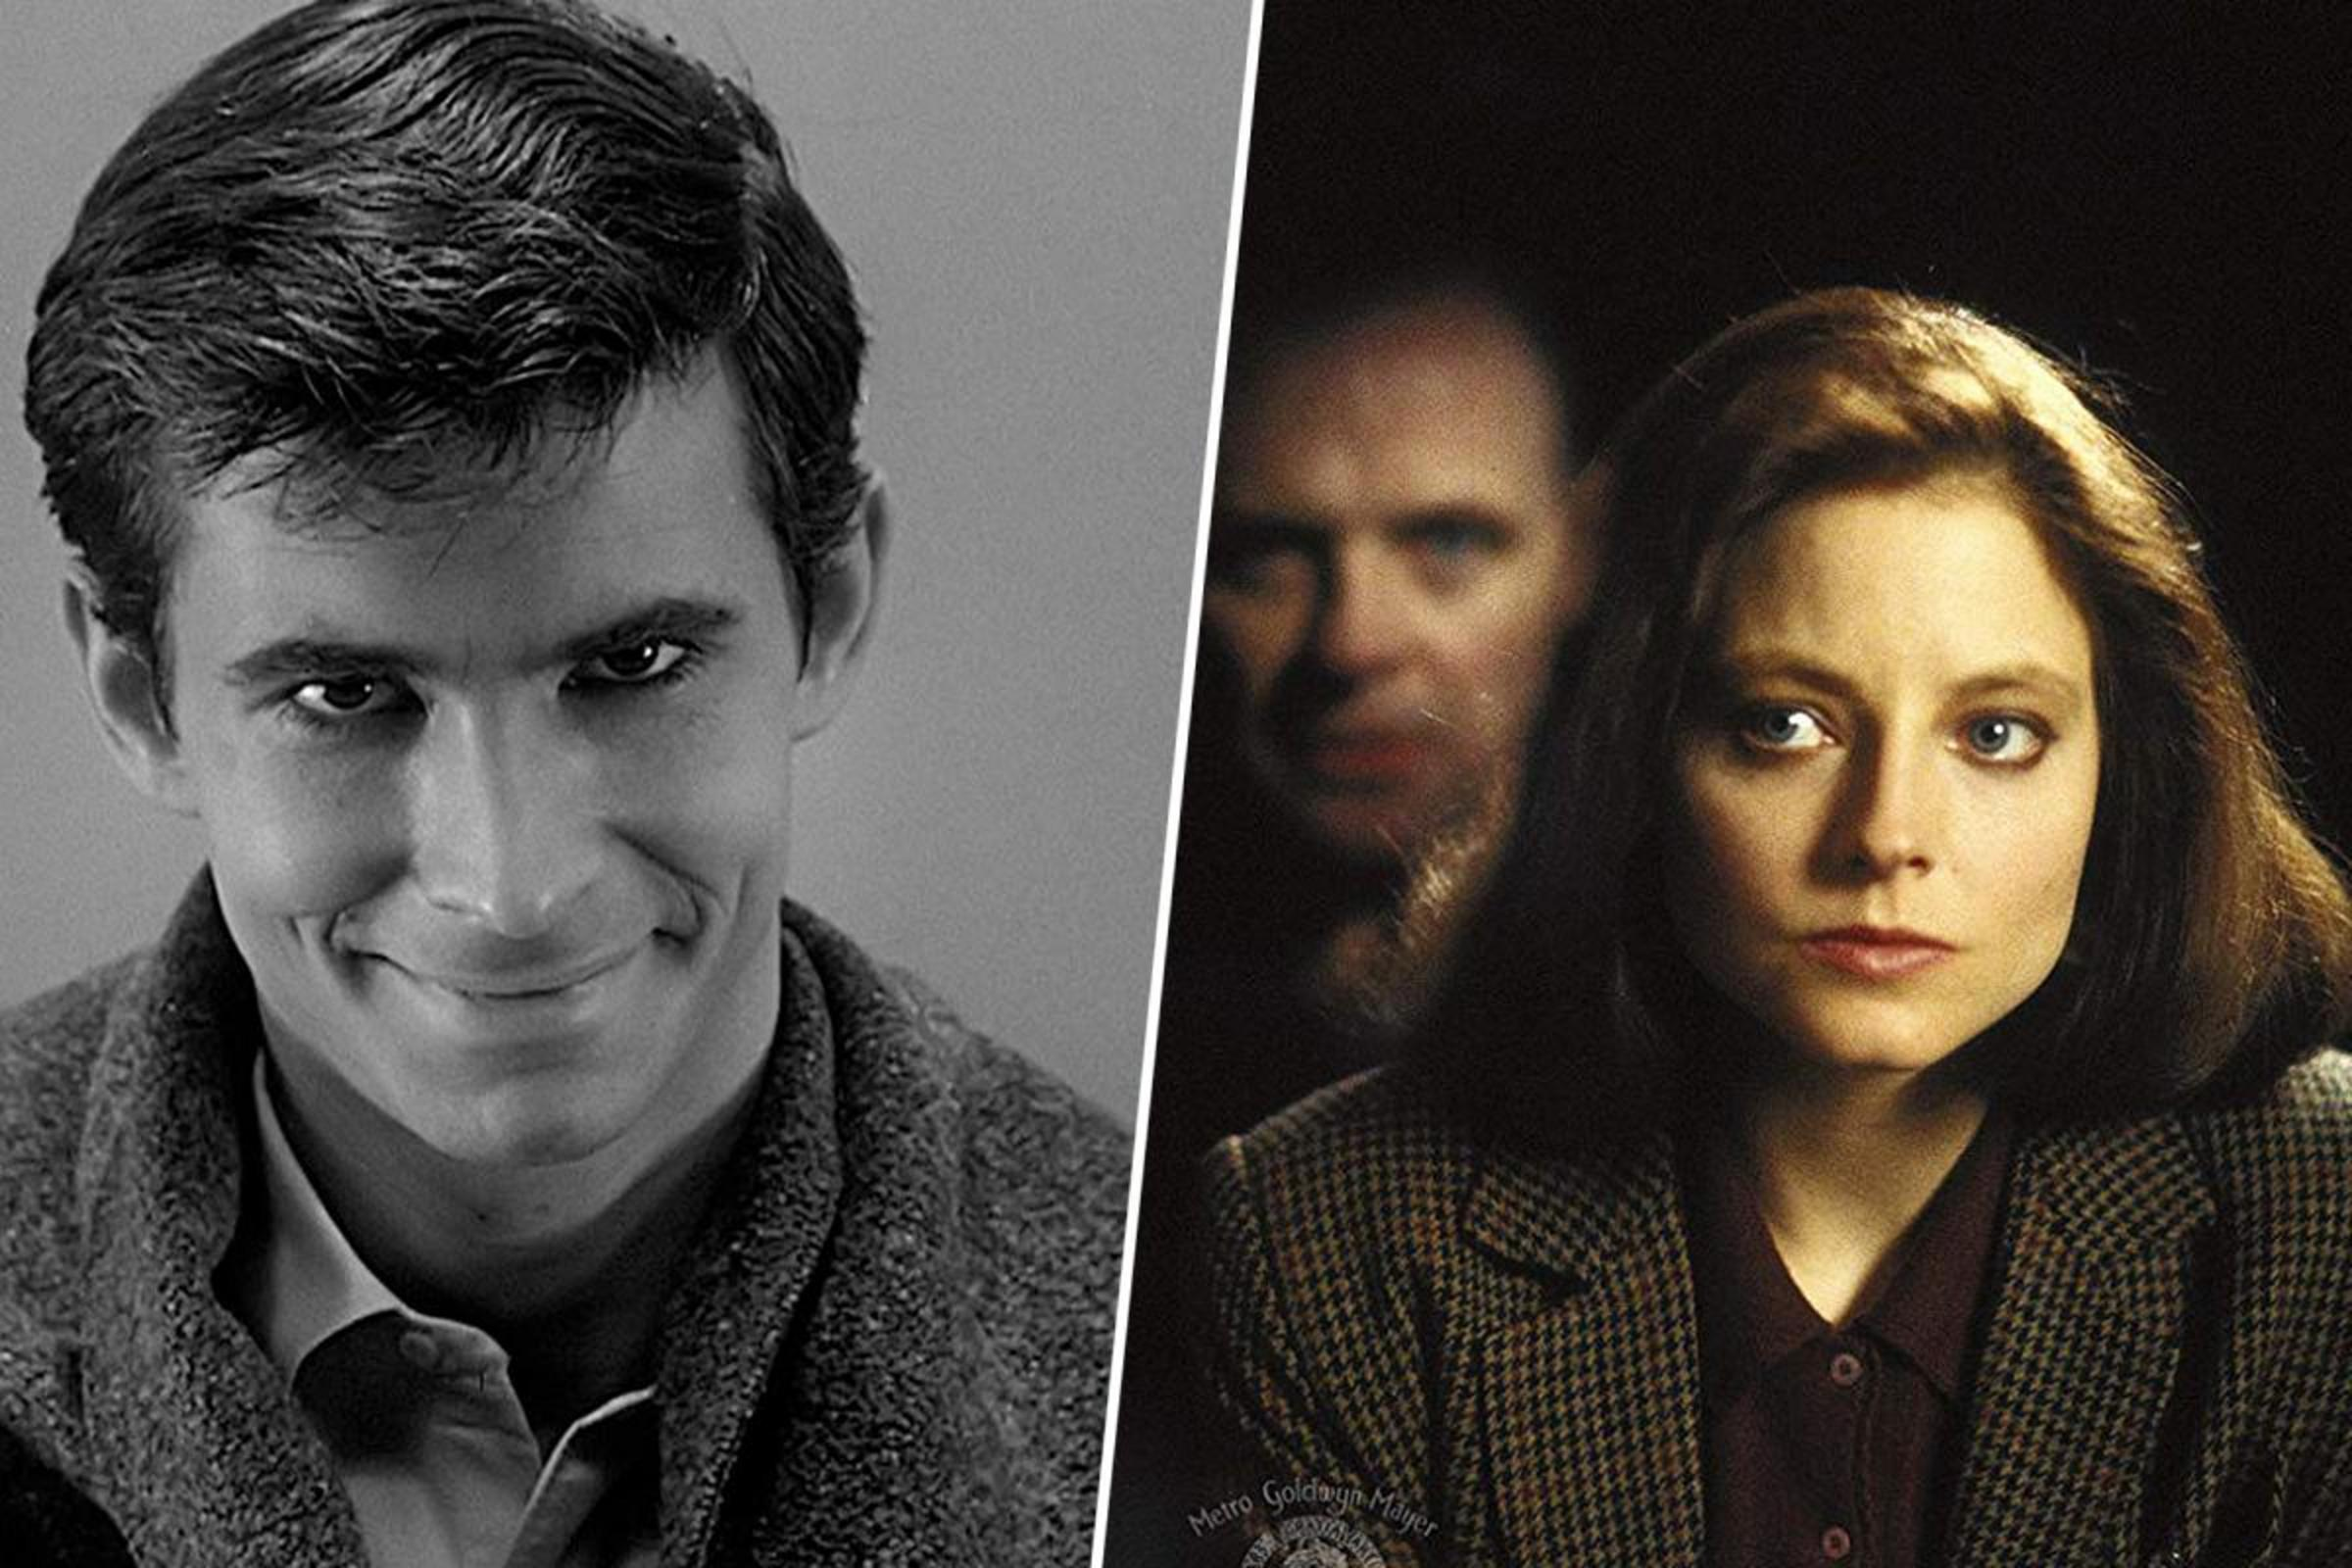 The Silence Of The Lambs/The Psycho.